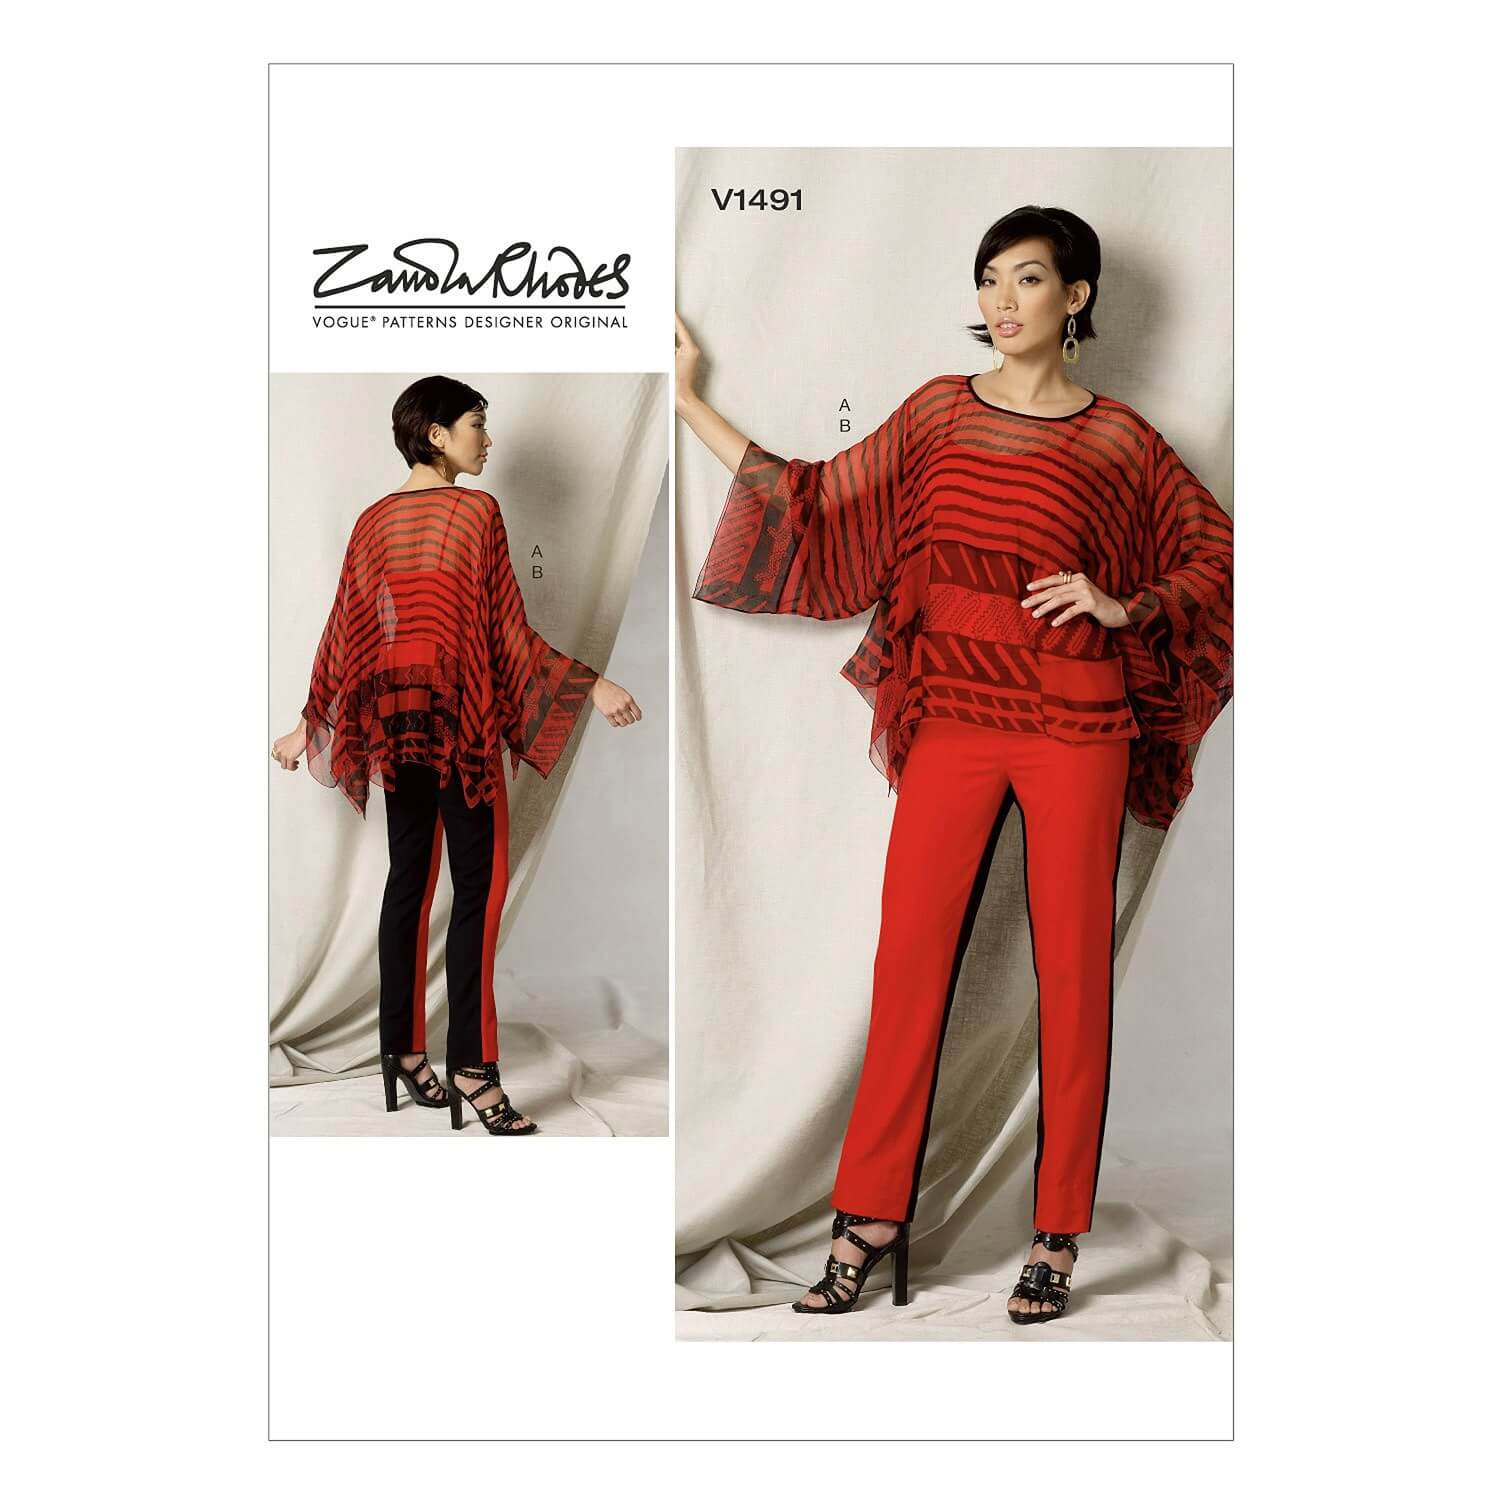 Vogue Sewing Pattern V1491 Women's Handkerchief Tunic and Two Tone Trousers